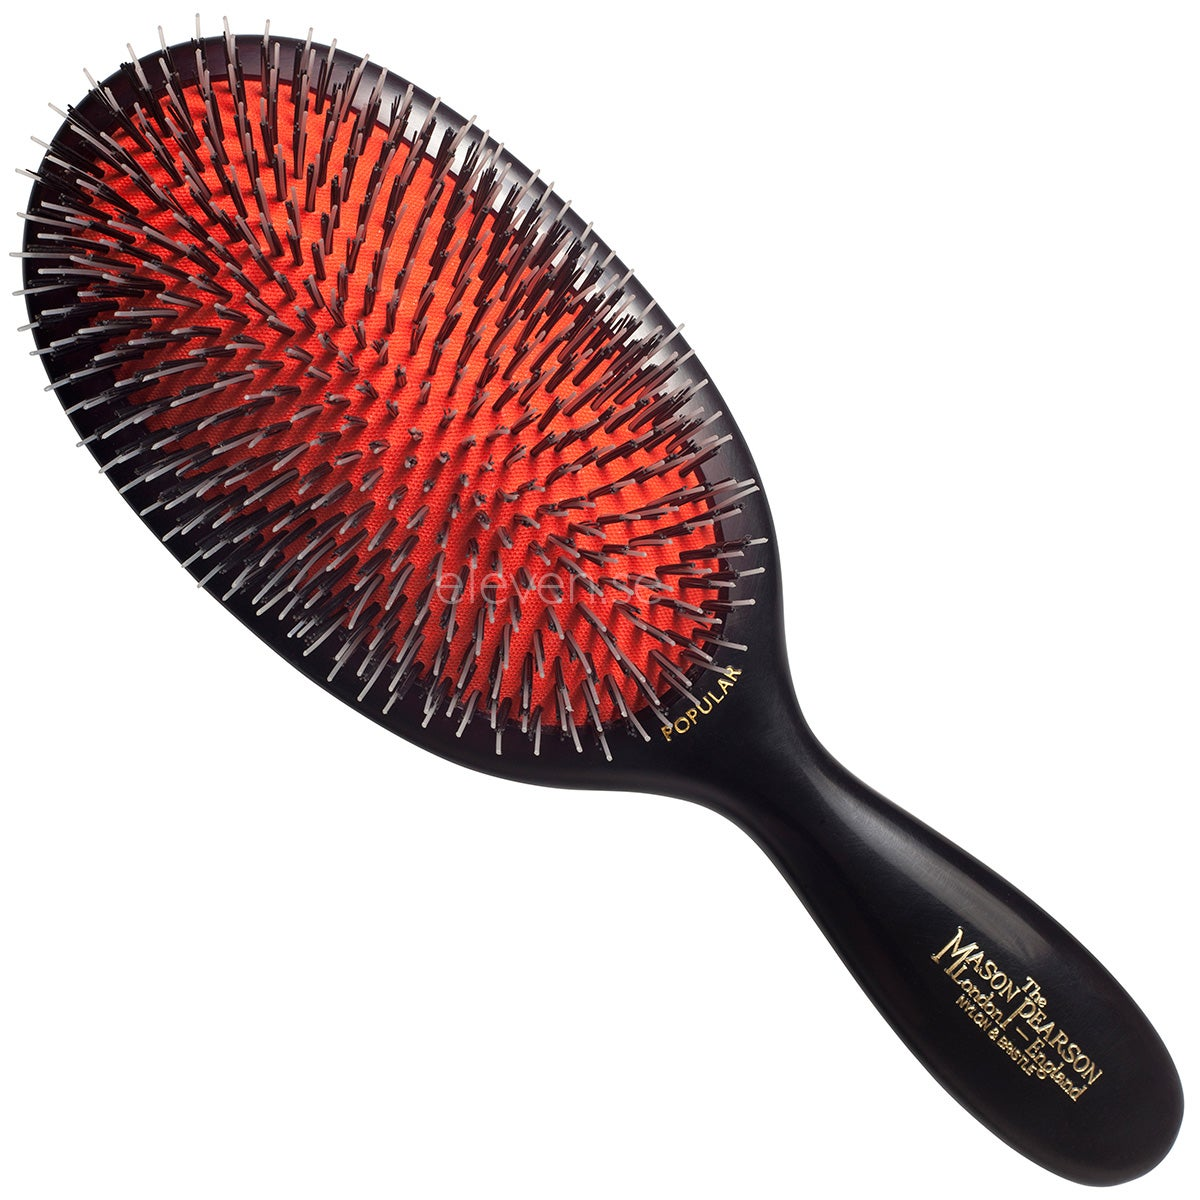 Mason Pearson Popular Bristle & Nylon, Dark Ruby